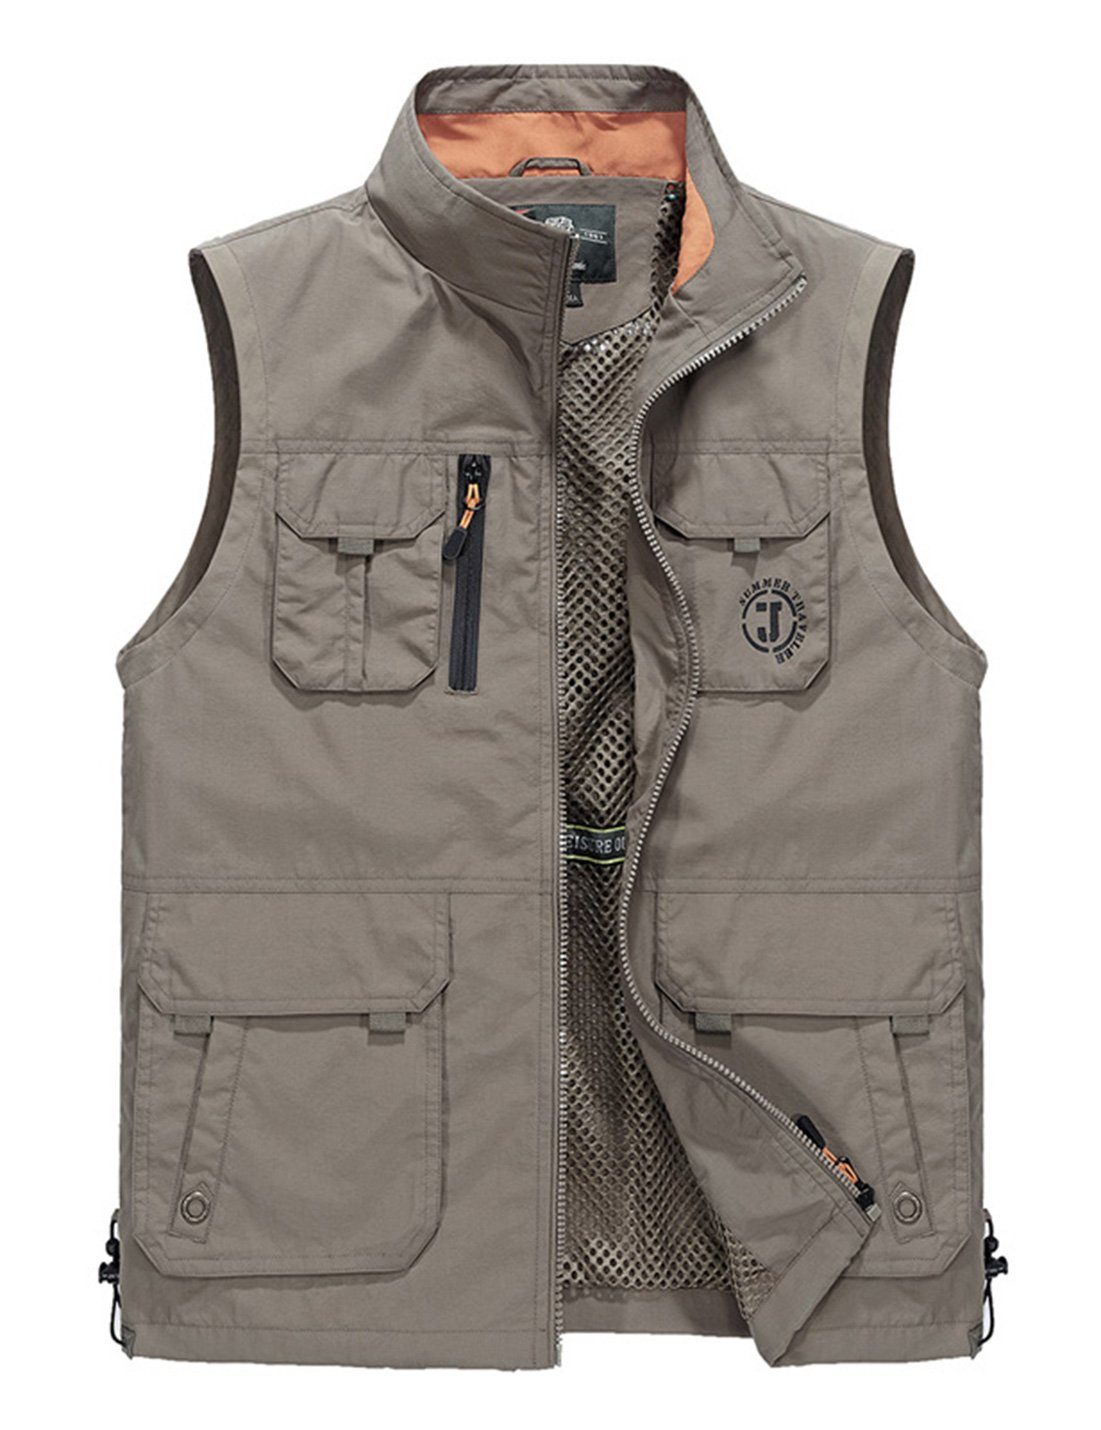 Gihuo Men's Lightweight Quick Dry Outdoor Multi Pockets Fishing Photo Journalist Active Vest Gilet (X-Large, Style2-Khaki) by Gihuo